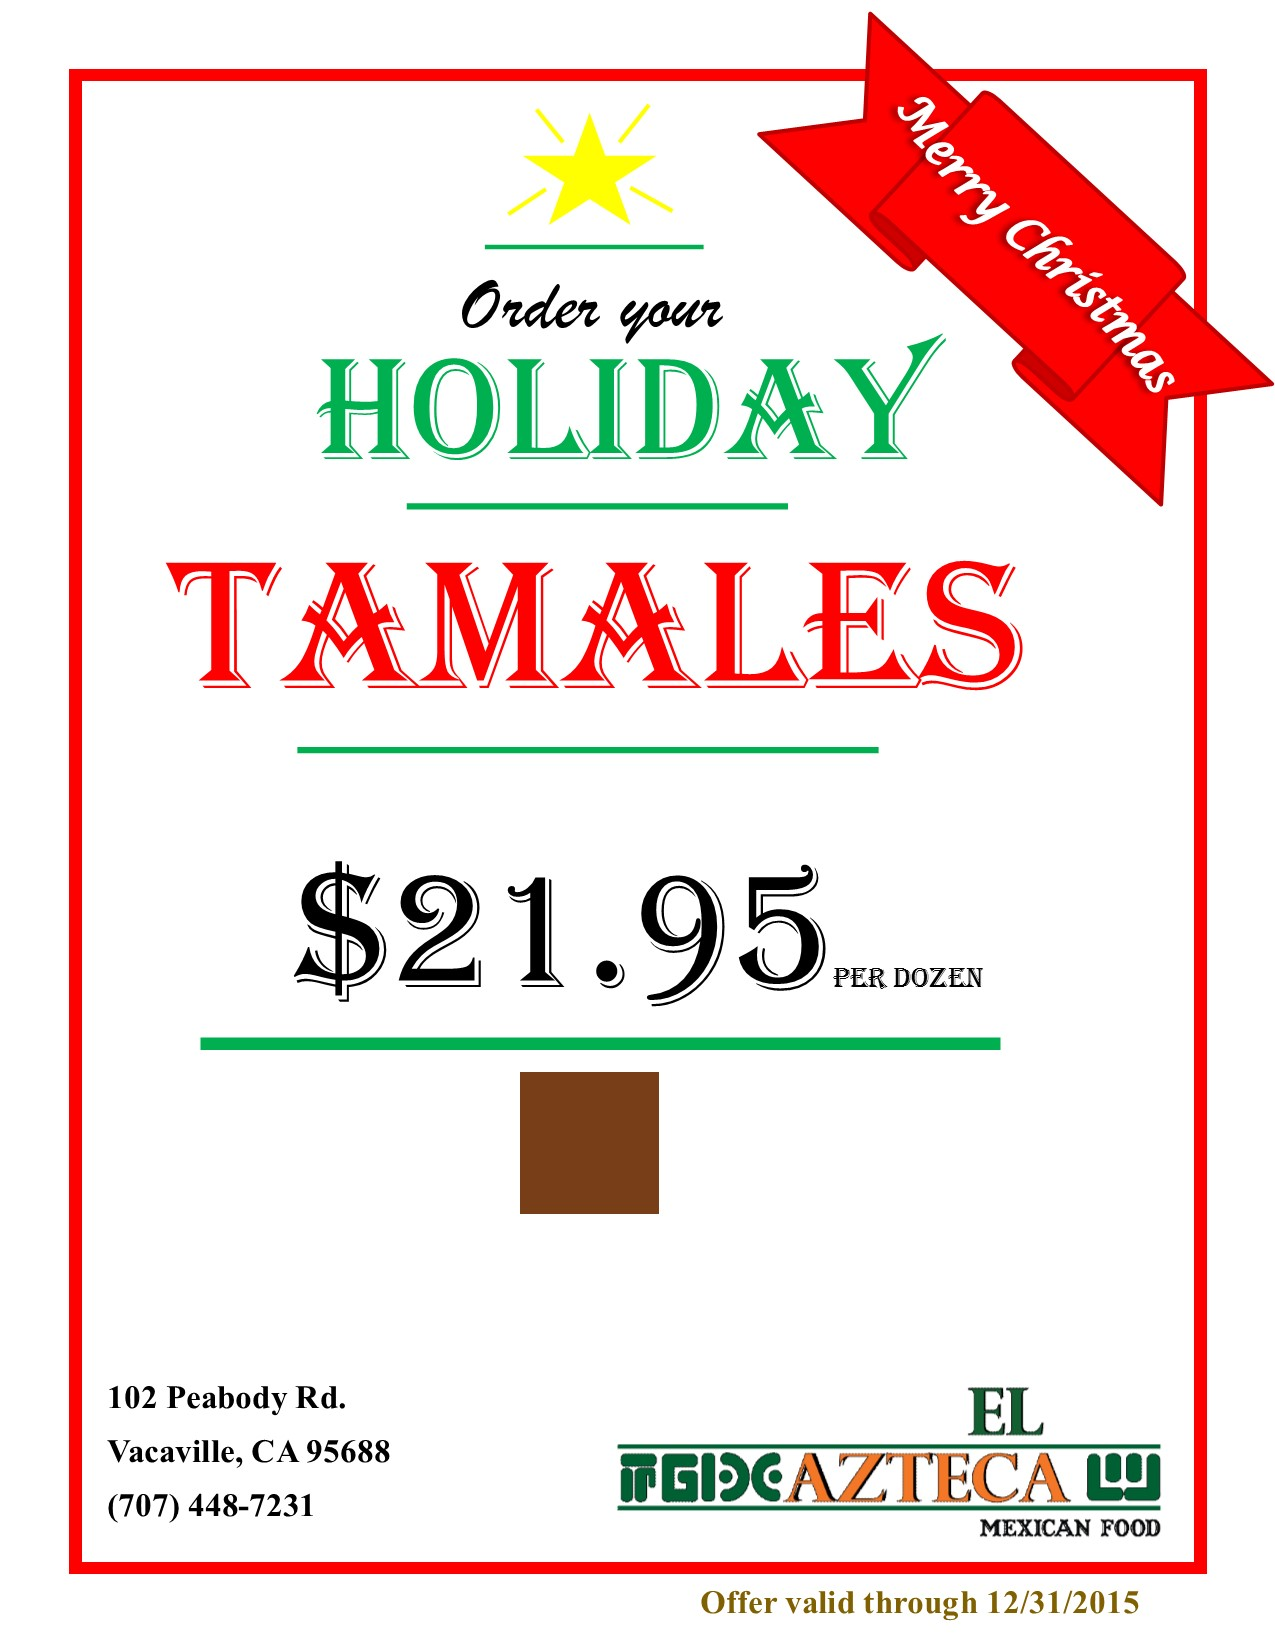 tamales-holiday-flyer-2016